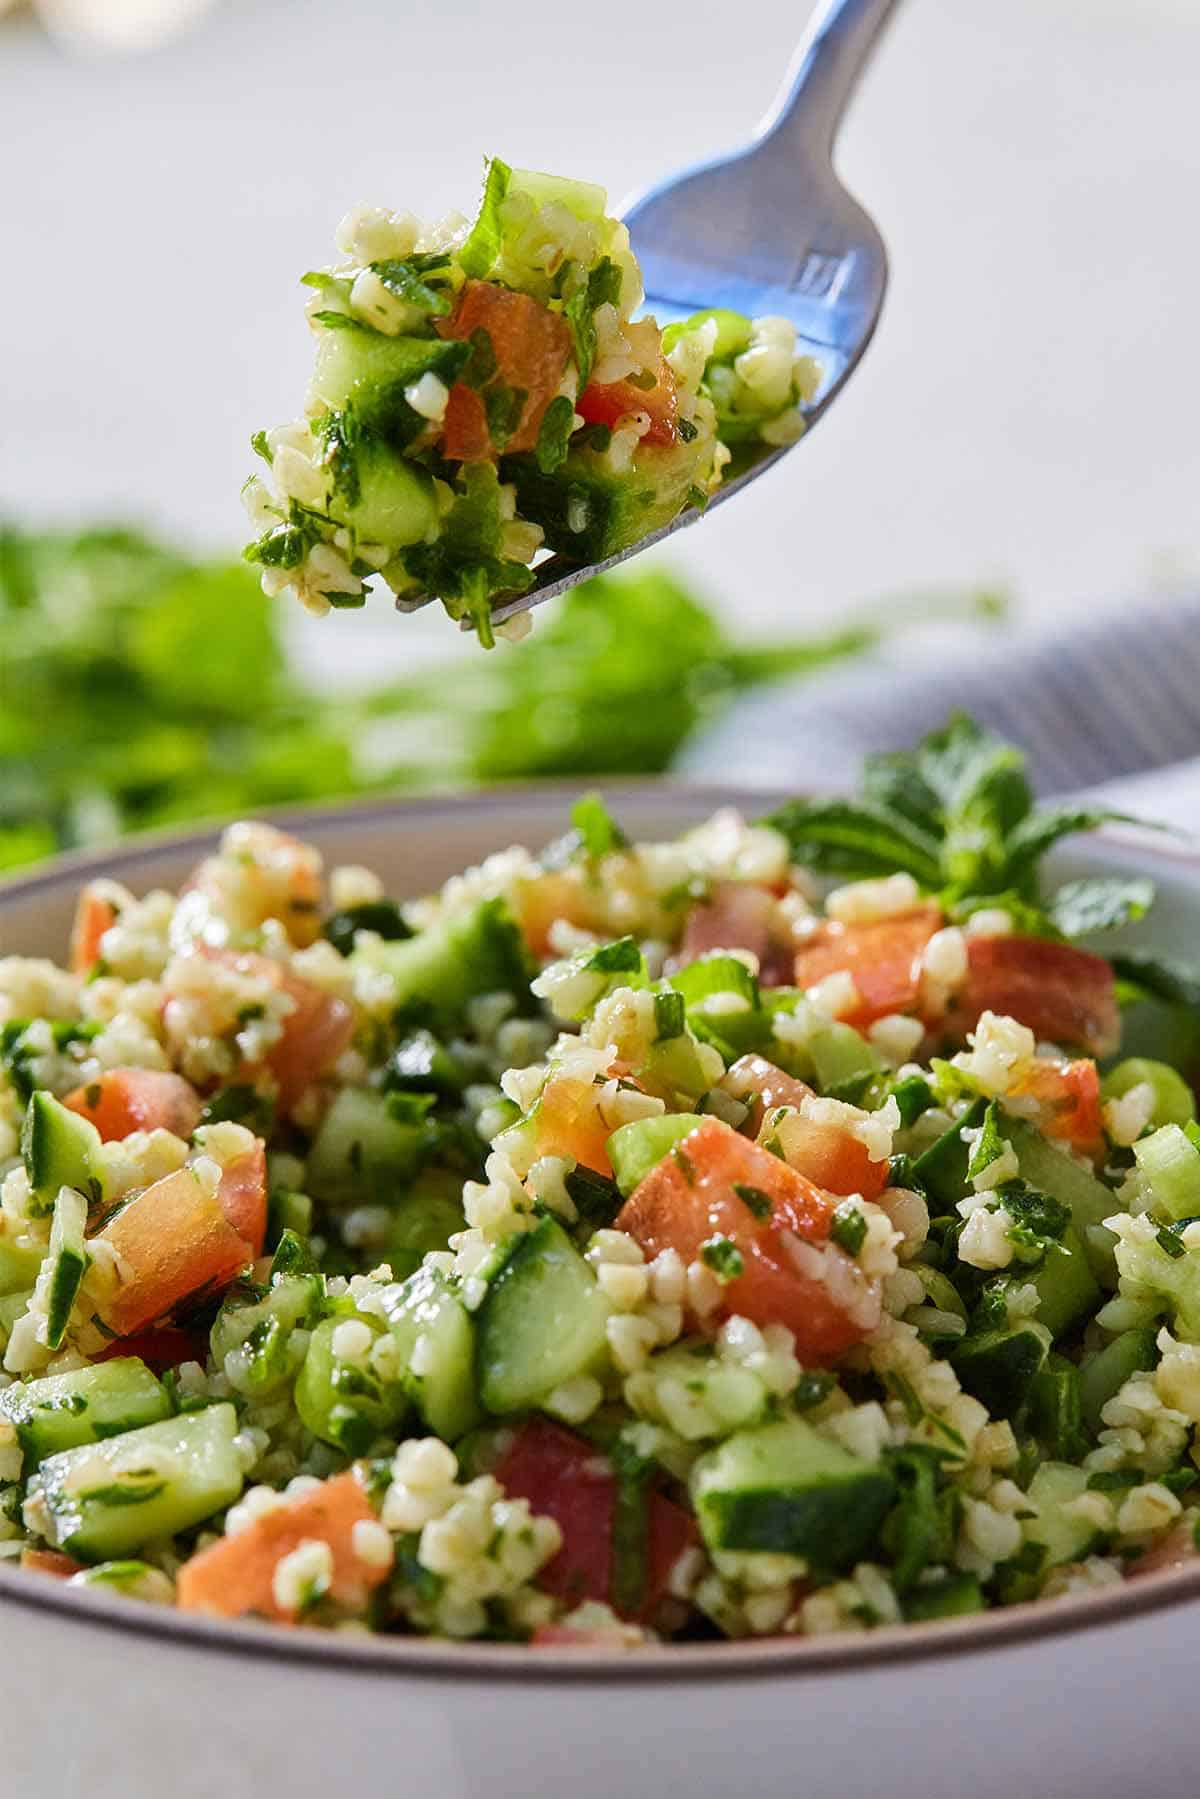 Close up of a fork lifting up a bite of tabbouleh from the bowl.